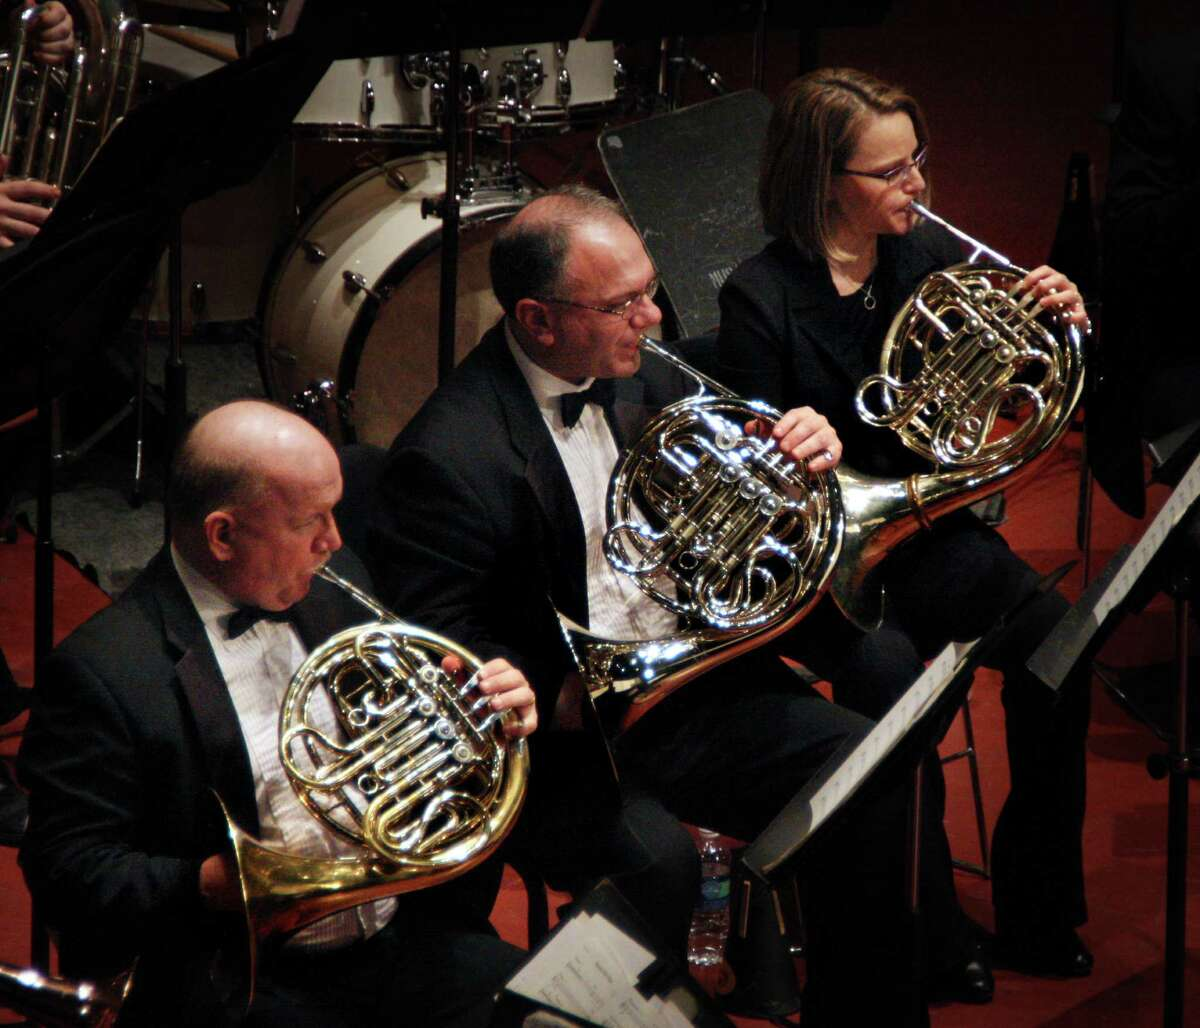 """The Indo-American Association will present the 22-member River City Brass in a """"Bollywood & Hollywood Brass Extravaganza"""" Feb. 19 at Wortham Theater Center."""